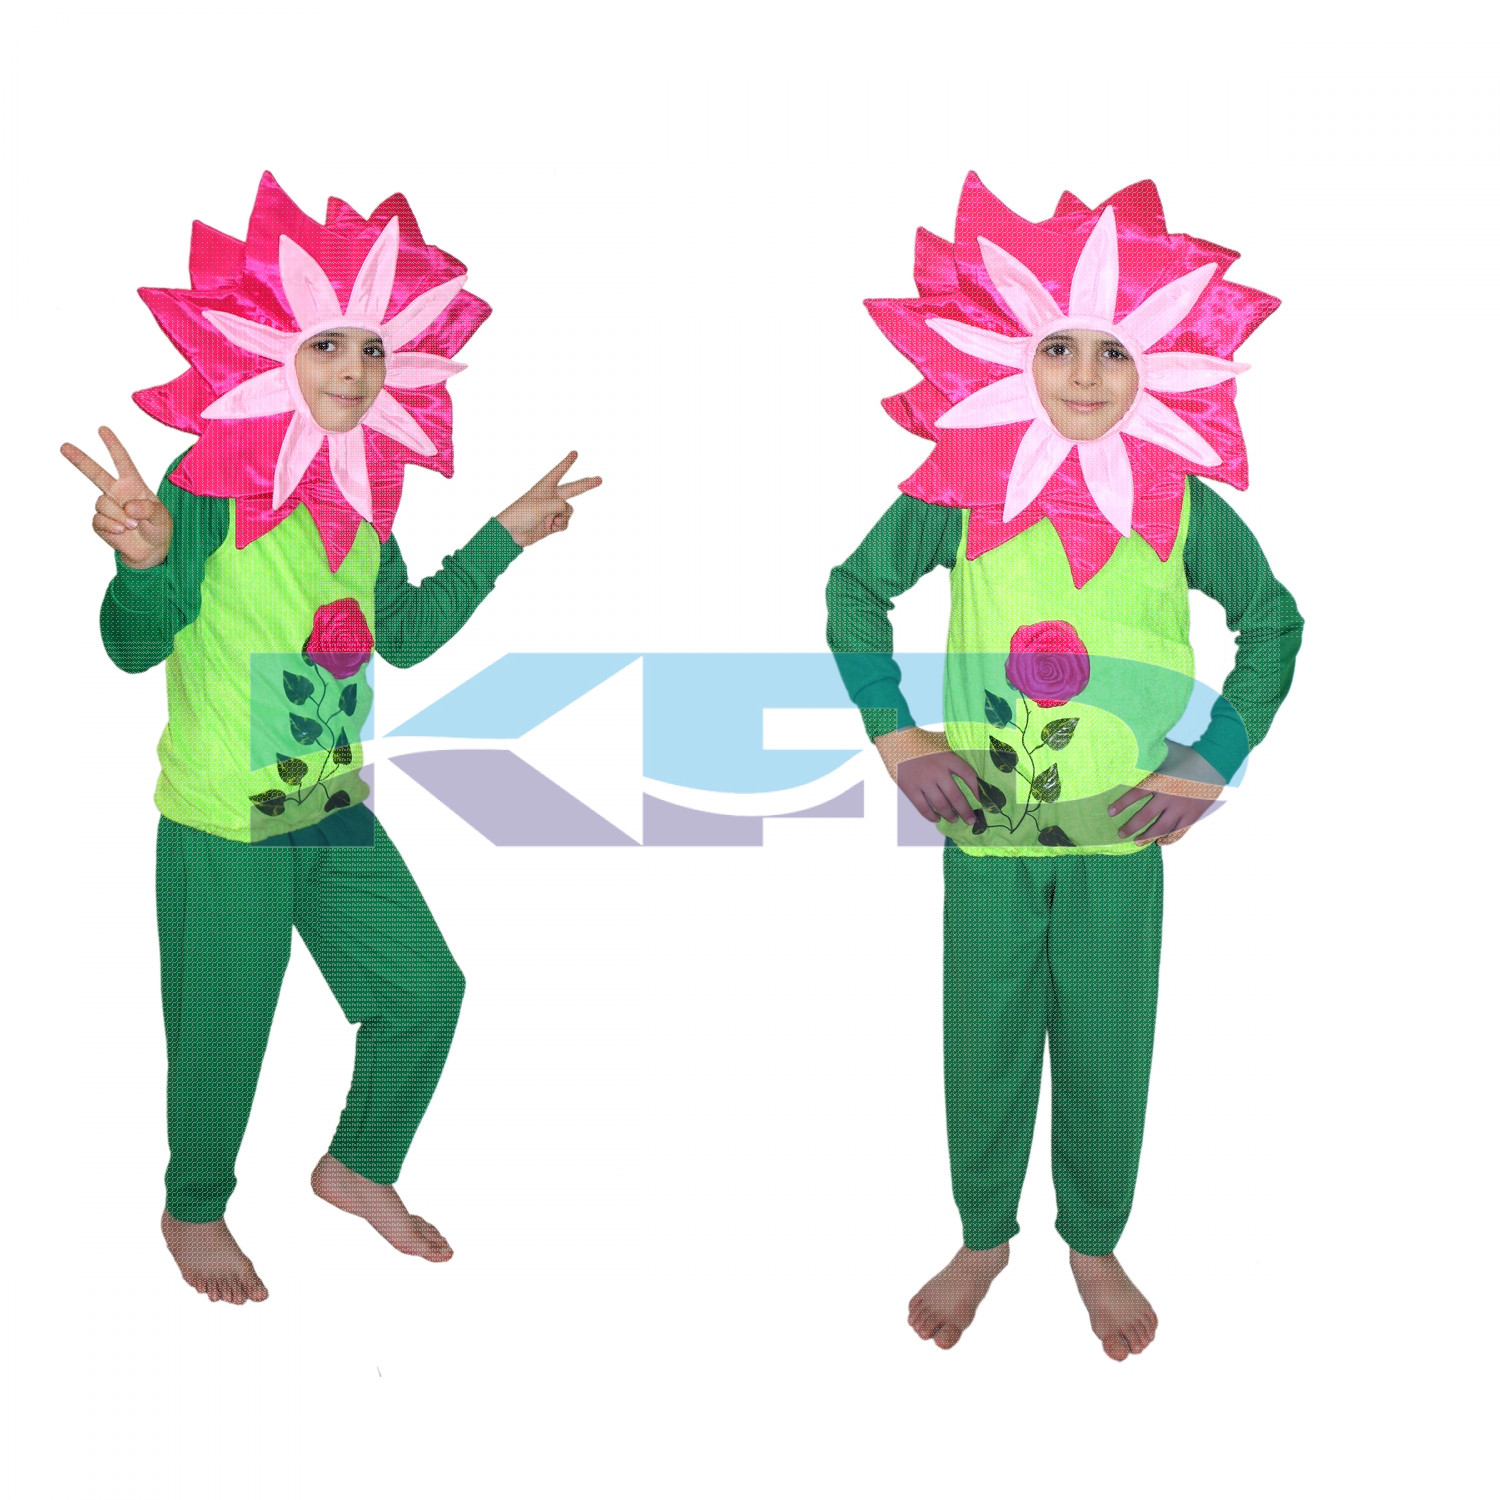 Mazanta Flower with track suit Costume,Rose Costume,Nature Costume For School Annual function/Theme Party/Competition/Stage Shows/Birthday Party Dress